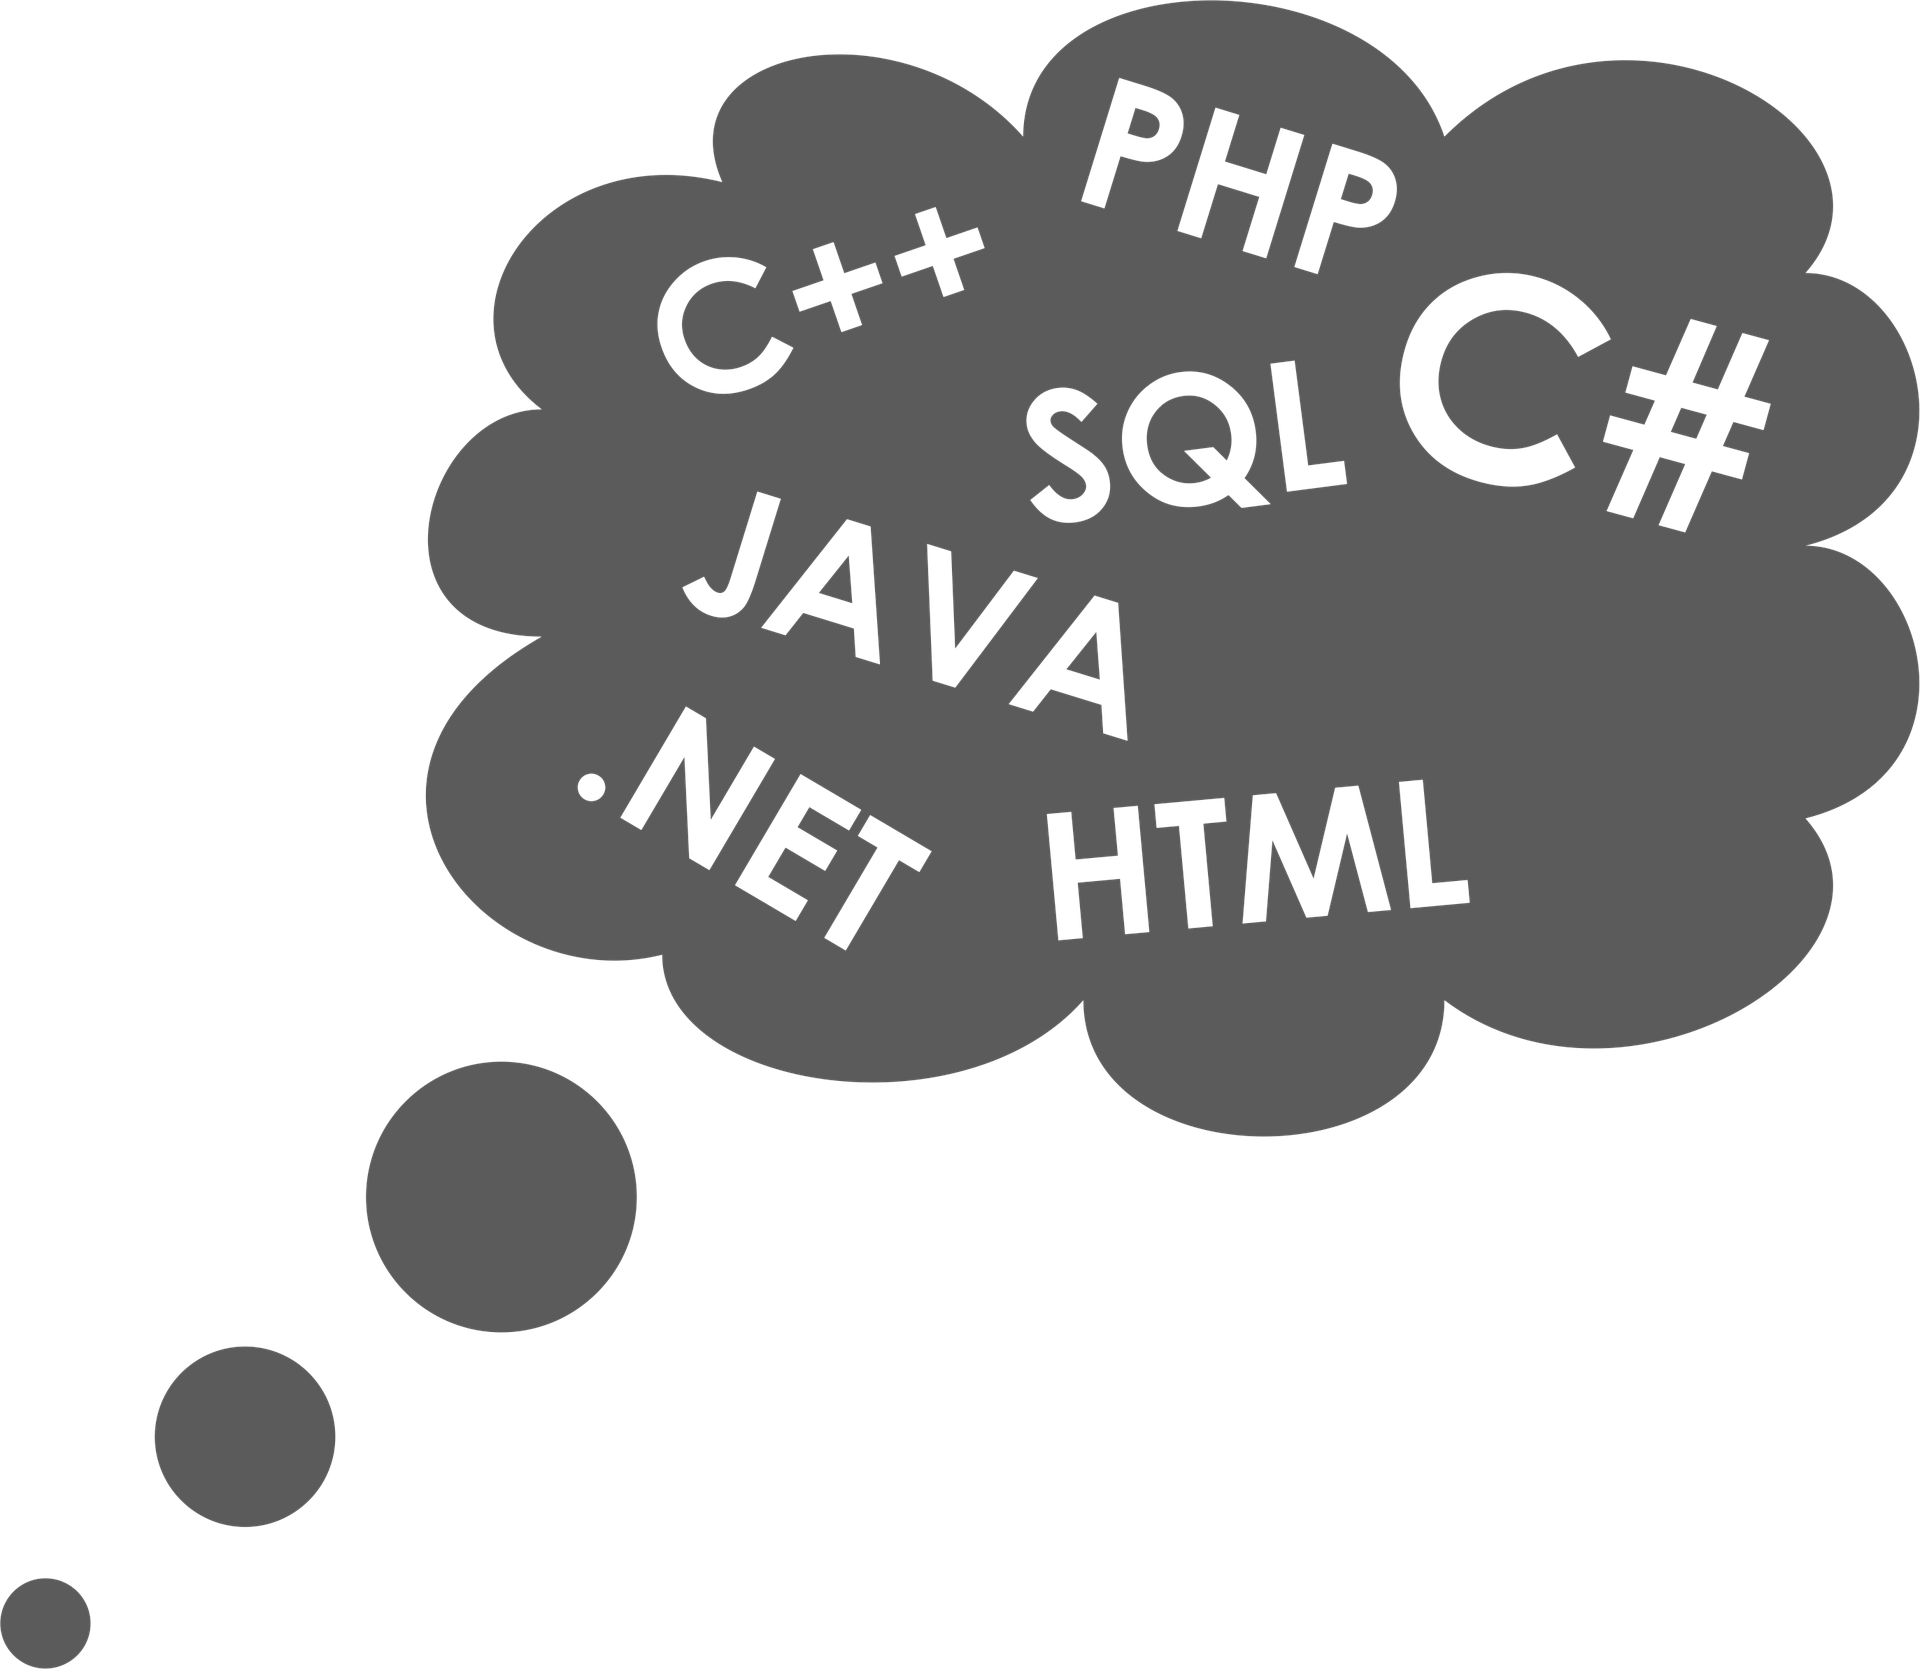 best programming languages to learn, best programming languages to learn 2021, best way to learn programming languages, which programming language is best for game development, best programming languages to learn for jobs